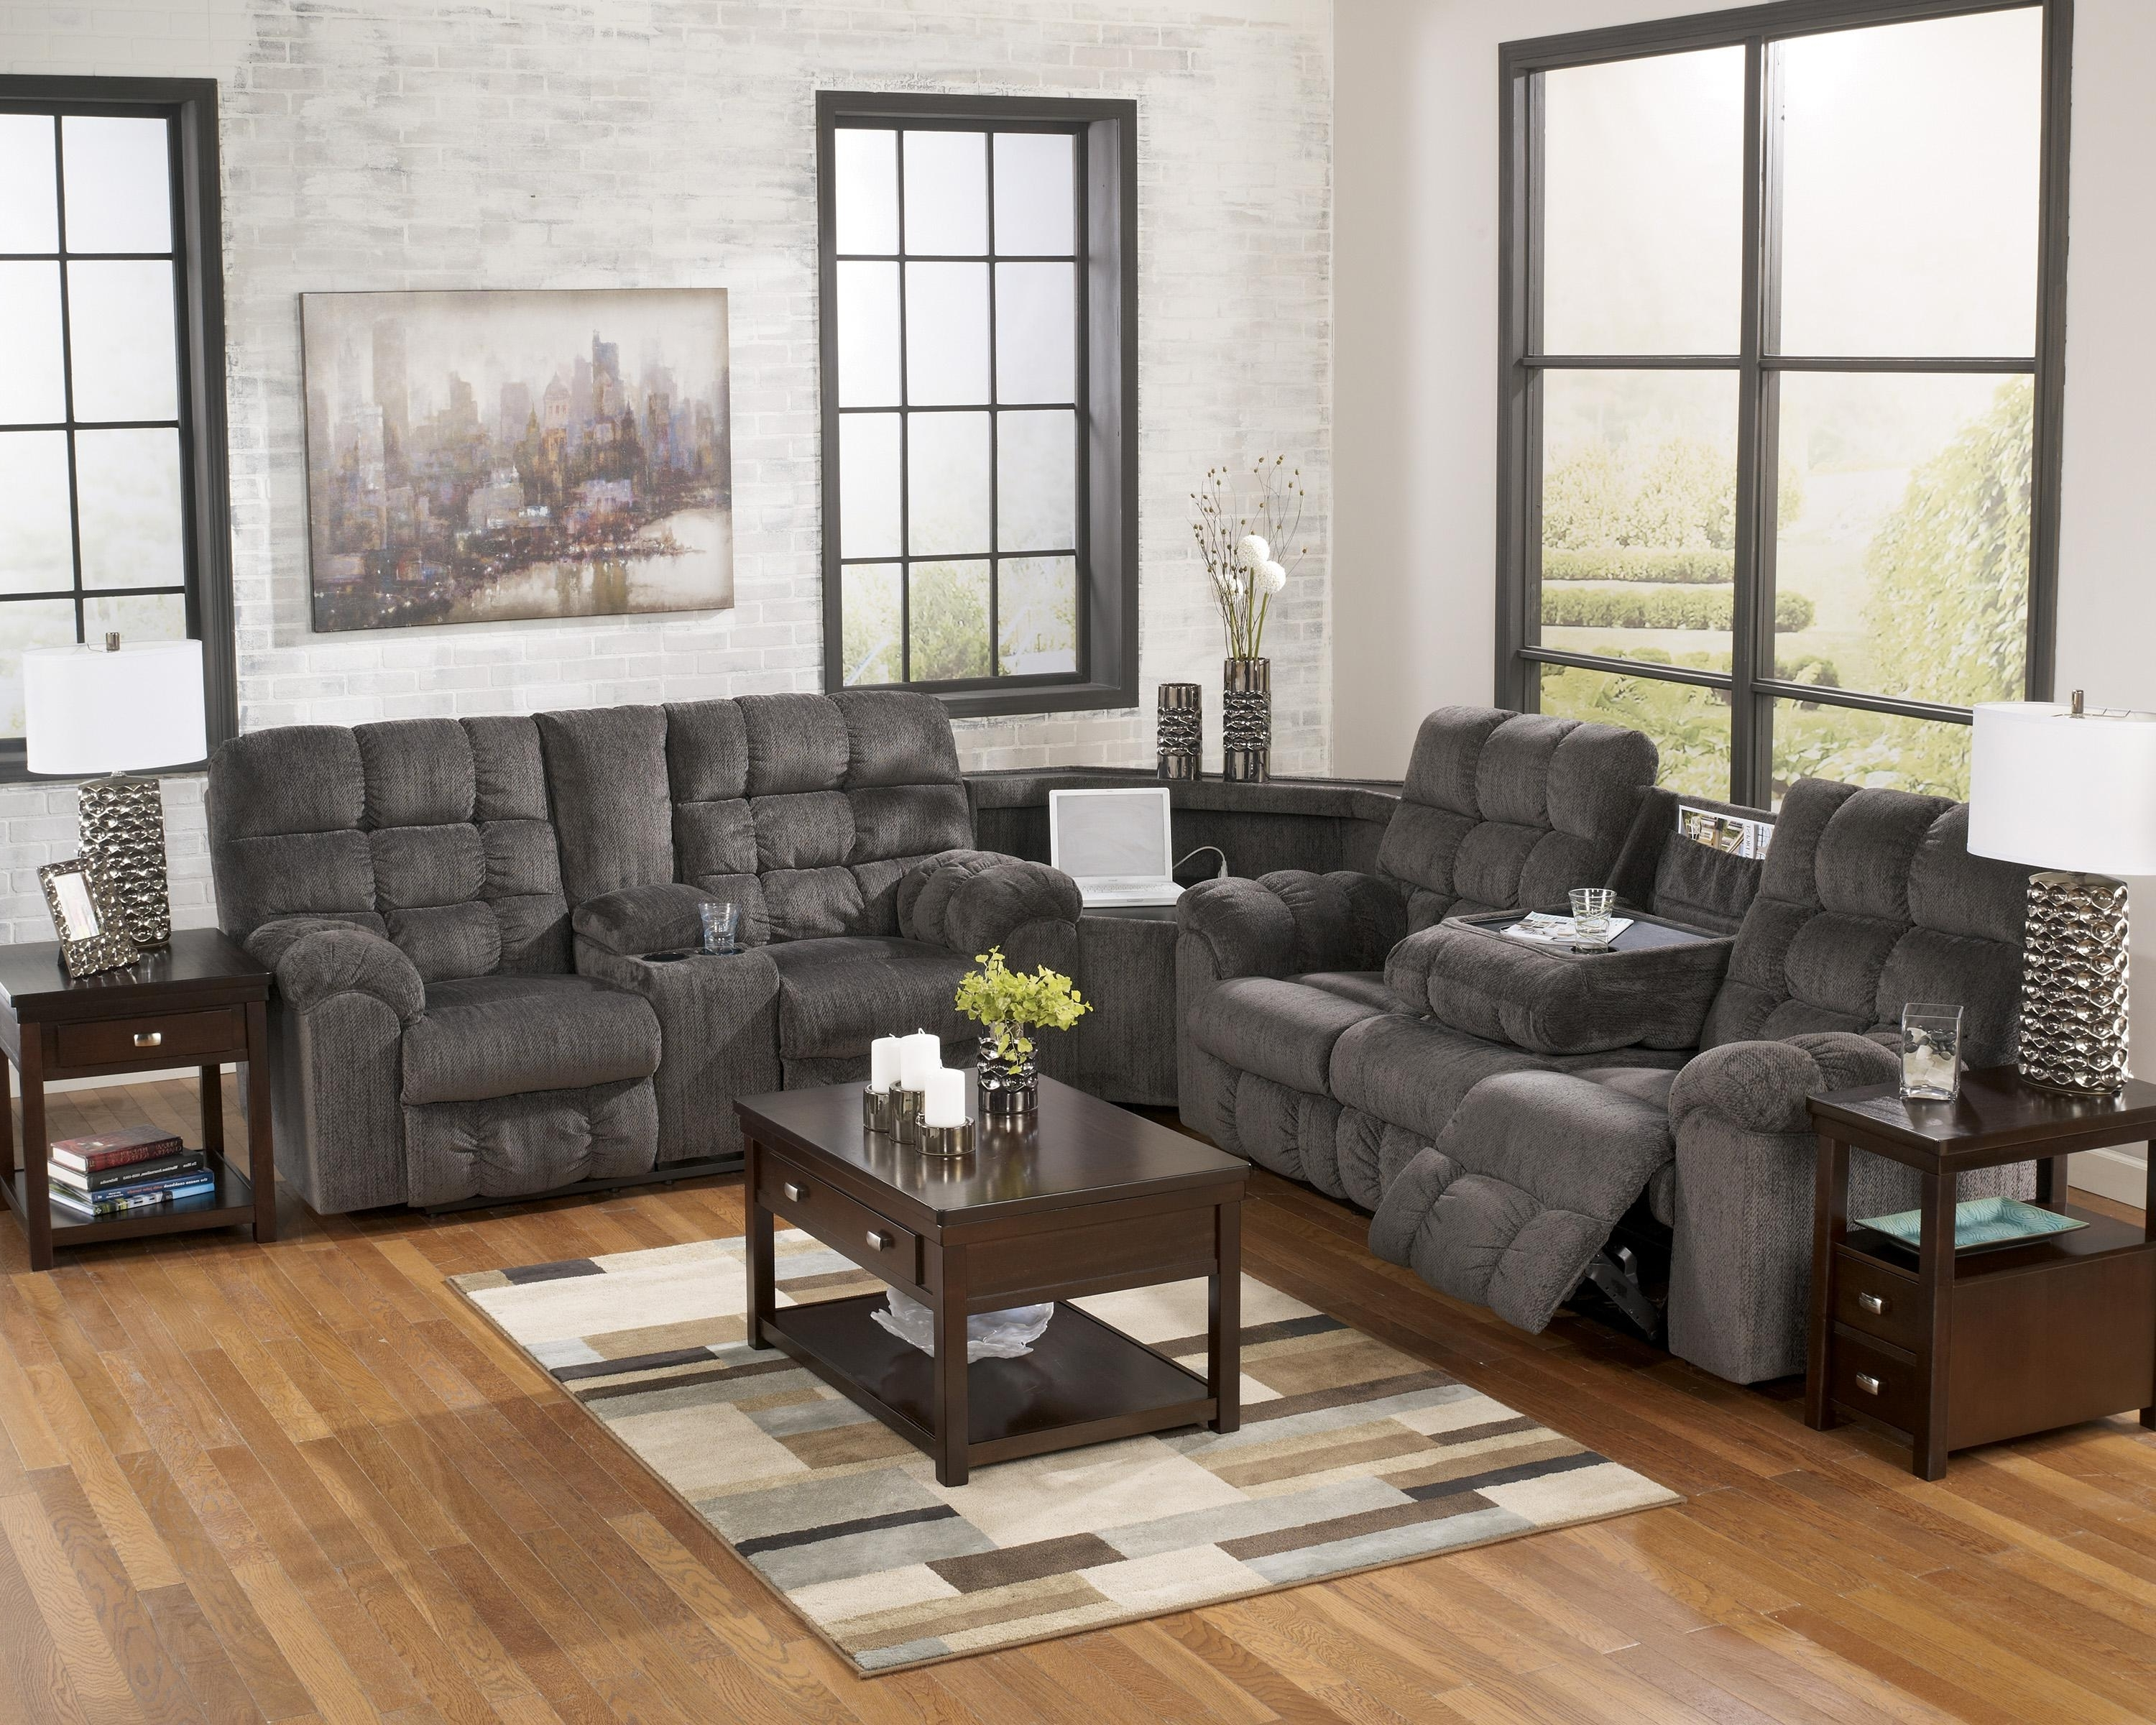 Trendy Reclining Sectional Sofa With Right Side Loveseat, Cup Holders And Within Las Vegas Sectional Sofas (View 15 of 20)